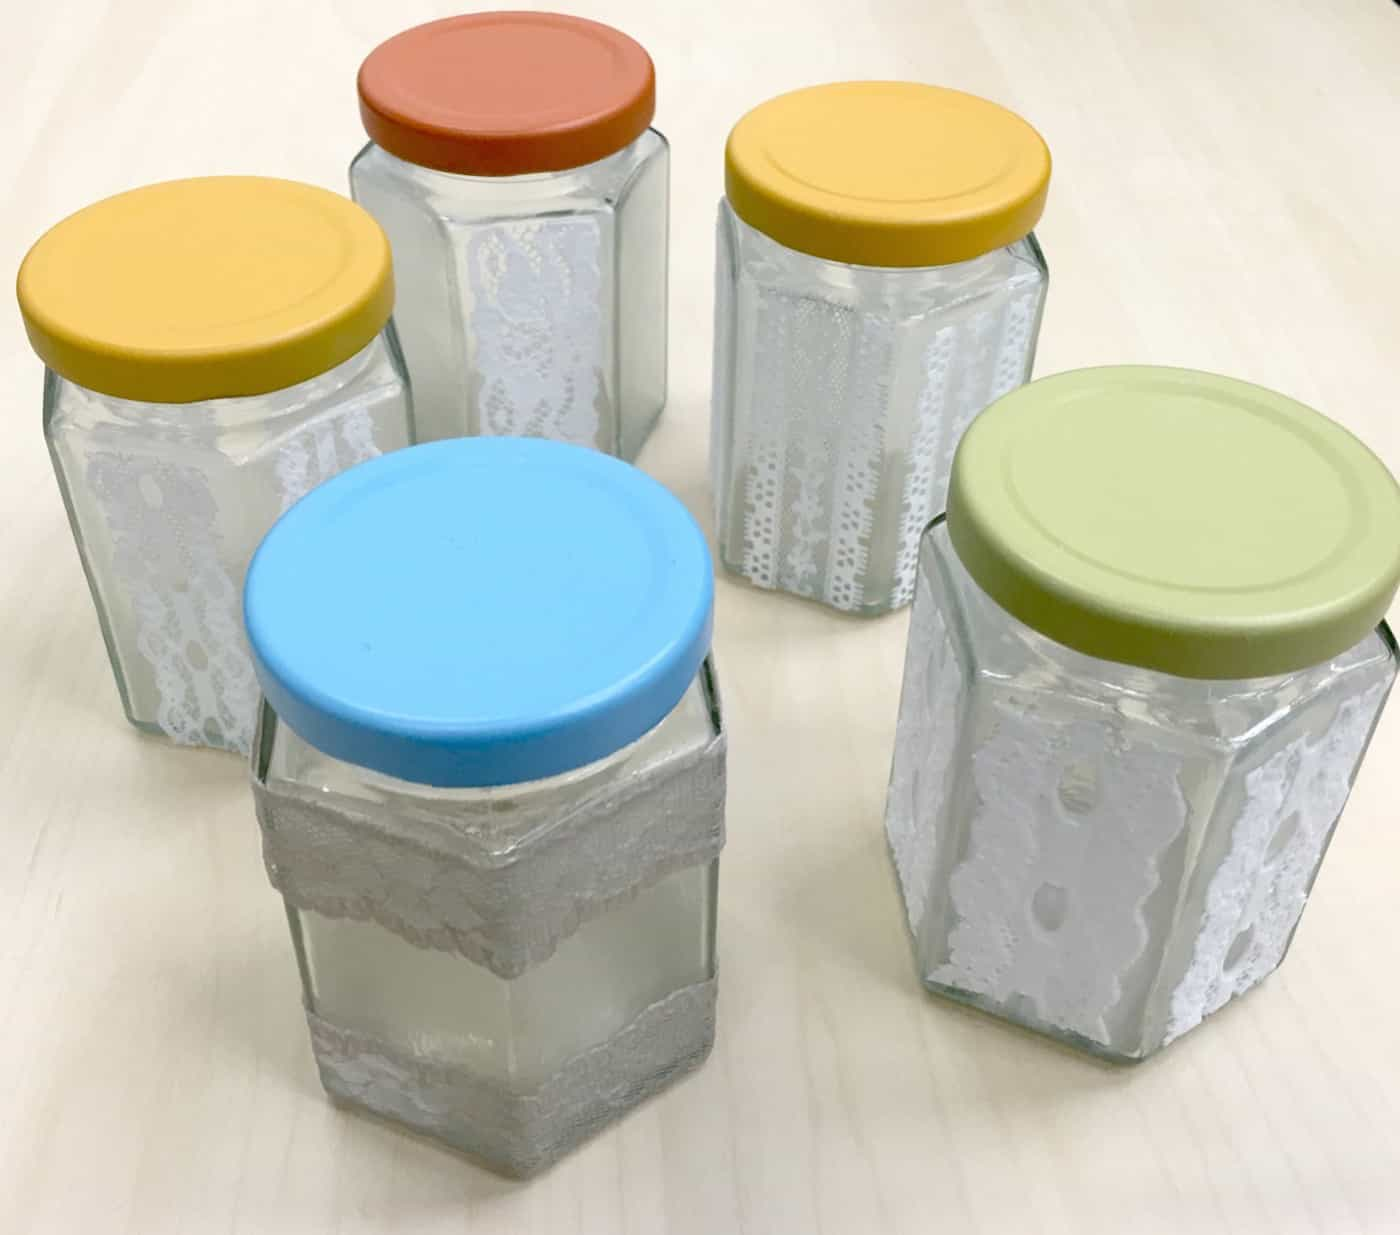 Lace mason jars with spray painted lids